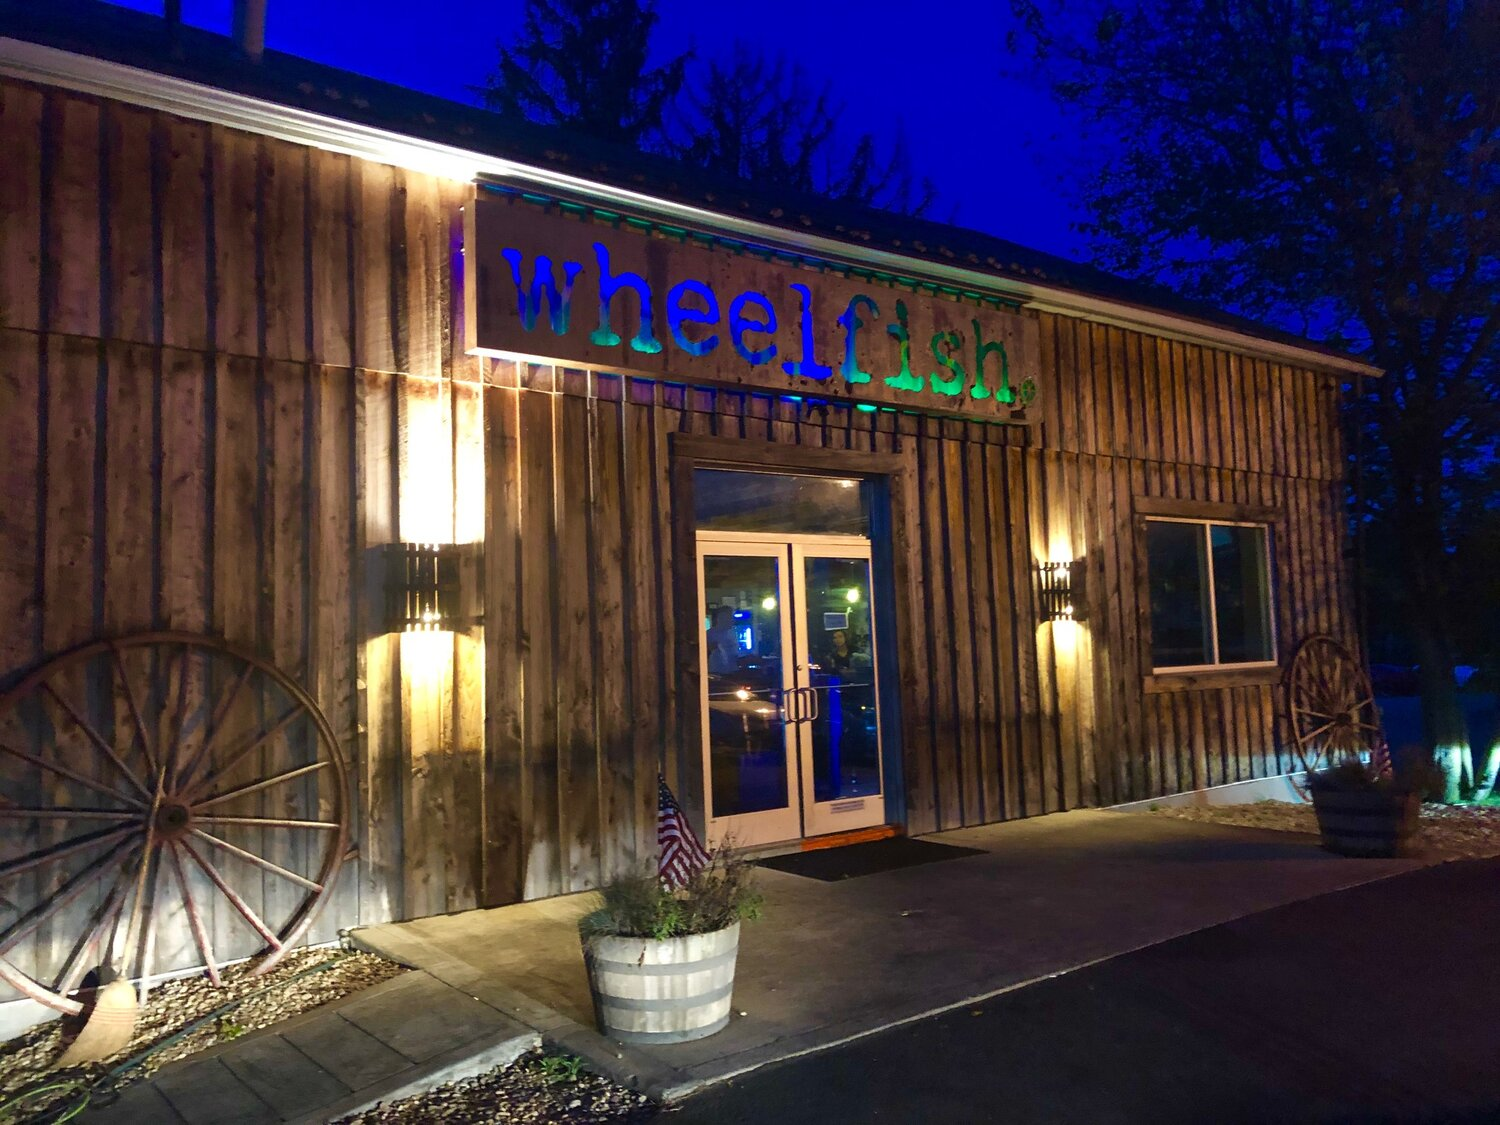 The Wheelfish in Ross Township, Pa. Great barbecue food.